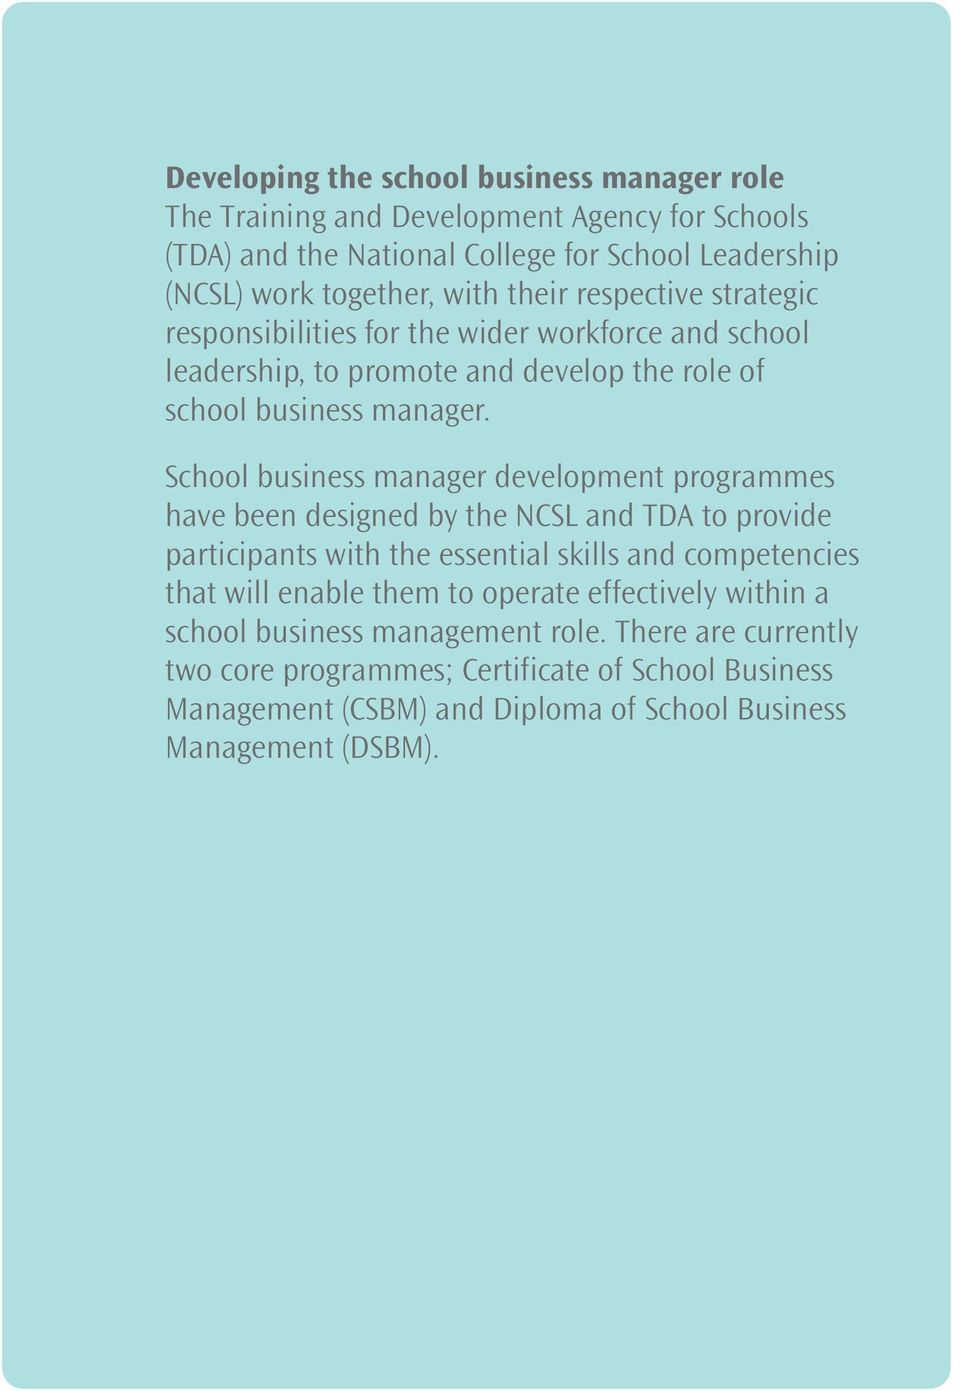 School business manager development programmes have been designed by the NCSL and TDA to provide participants with the essential skills and competencies that will enable them